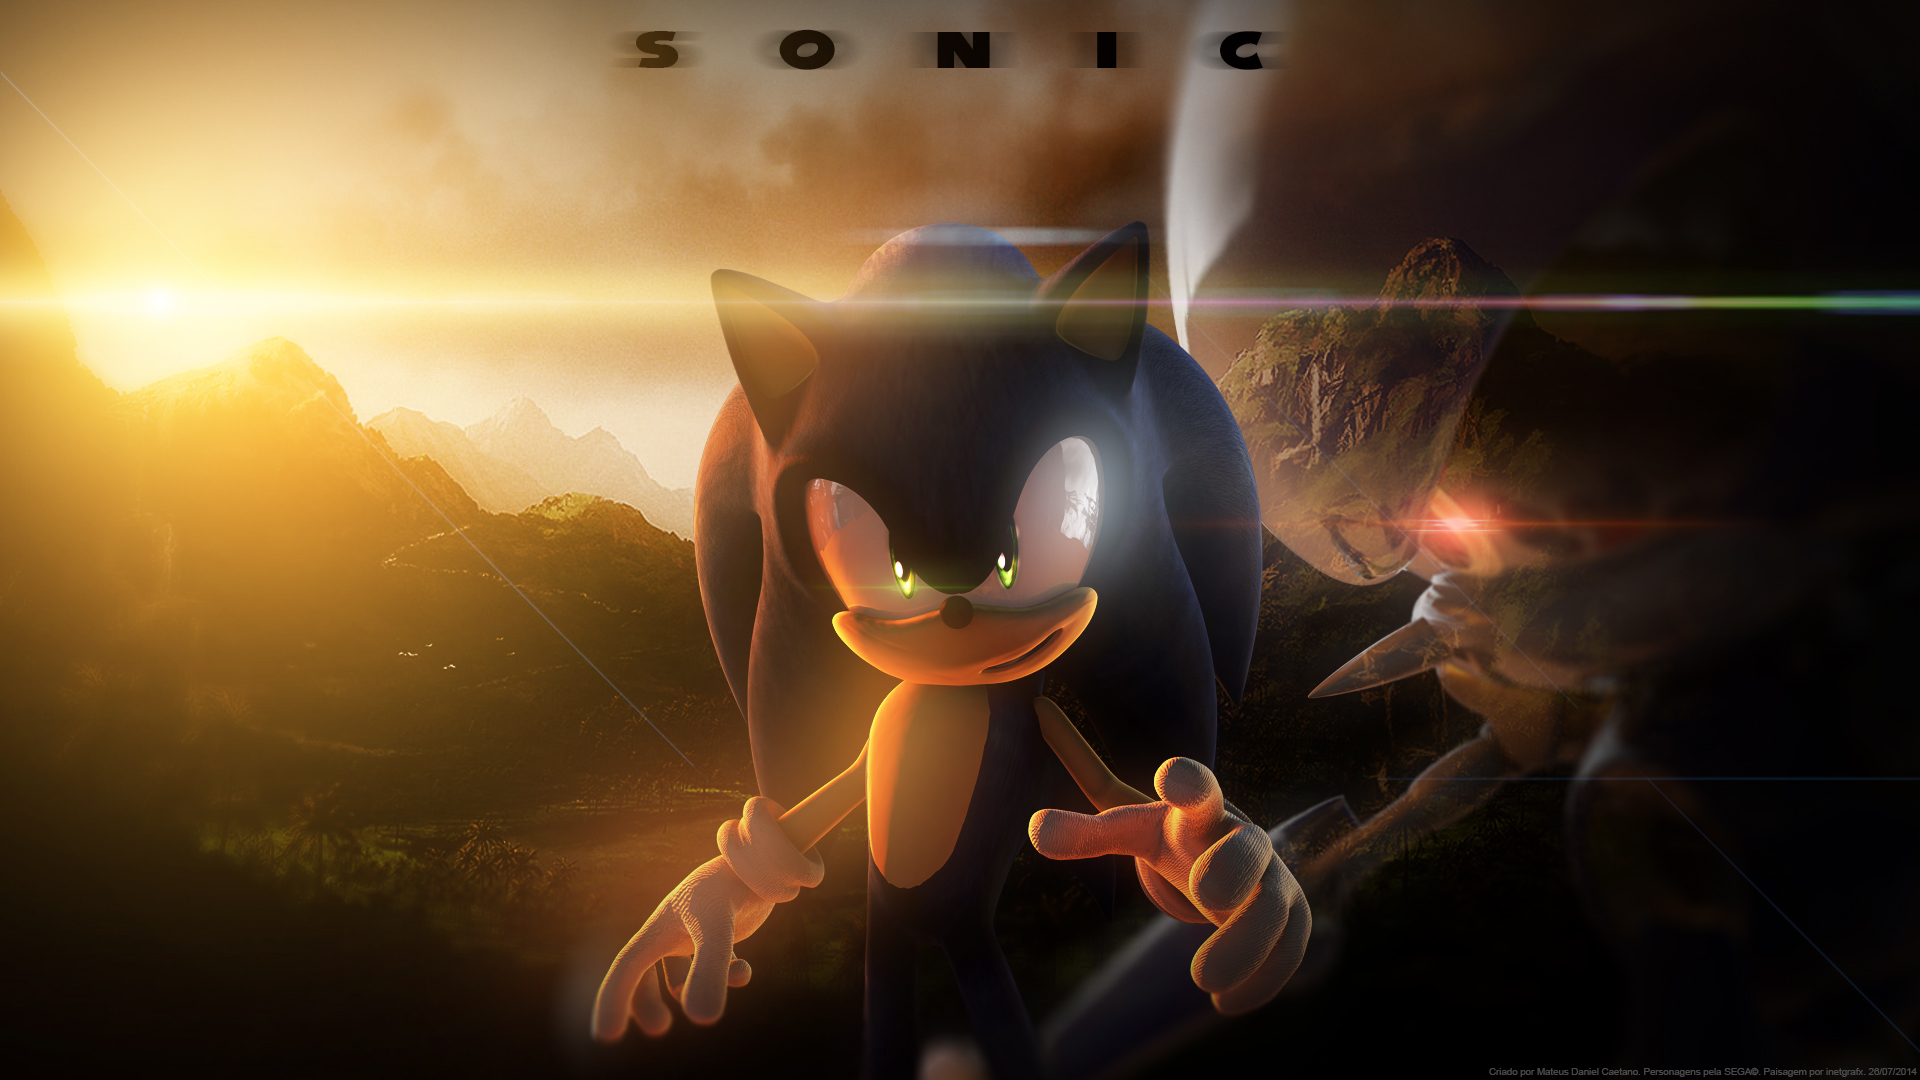 epic-sonic-by-mateus-dsd-1920×1080-wallpaper-wp3605386